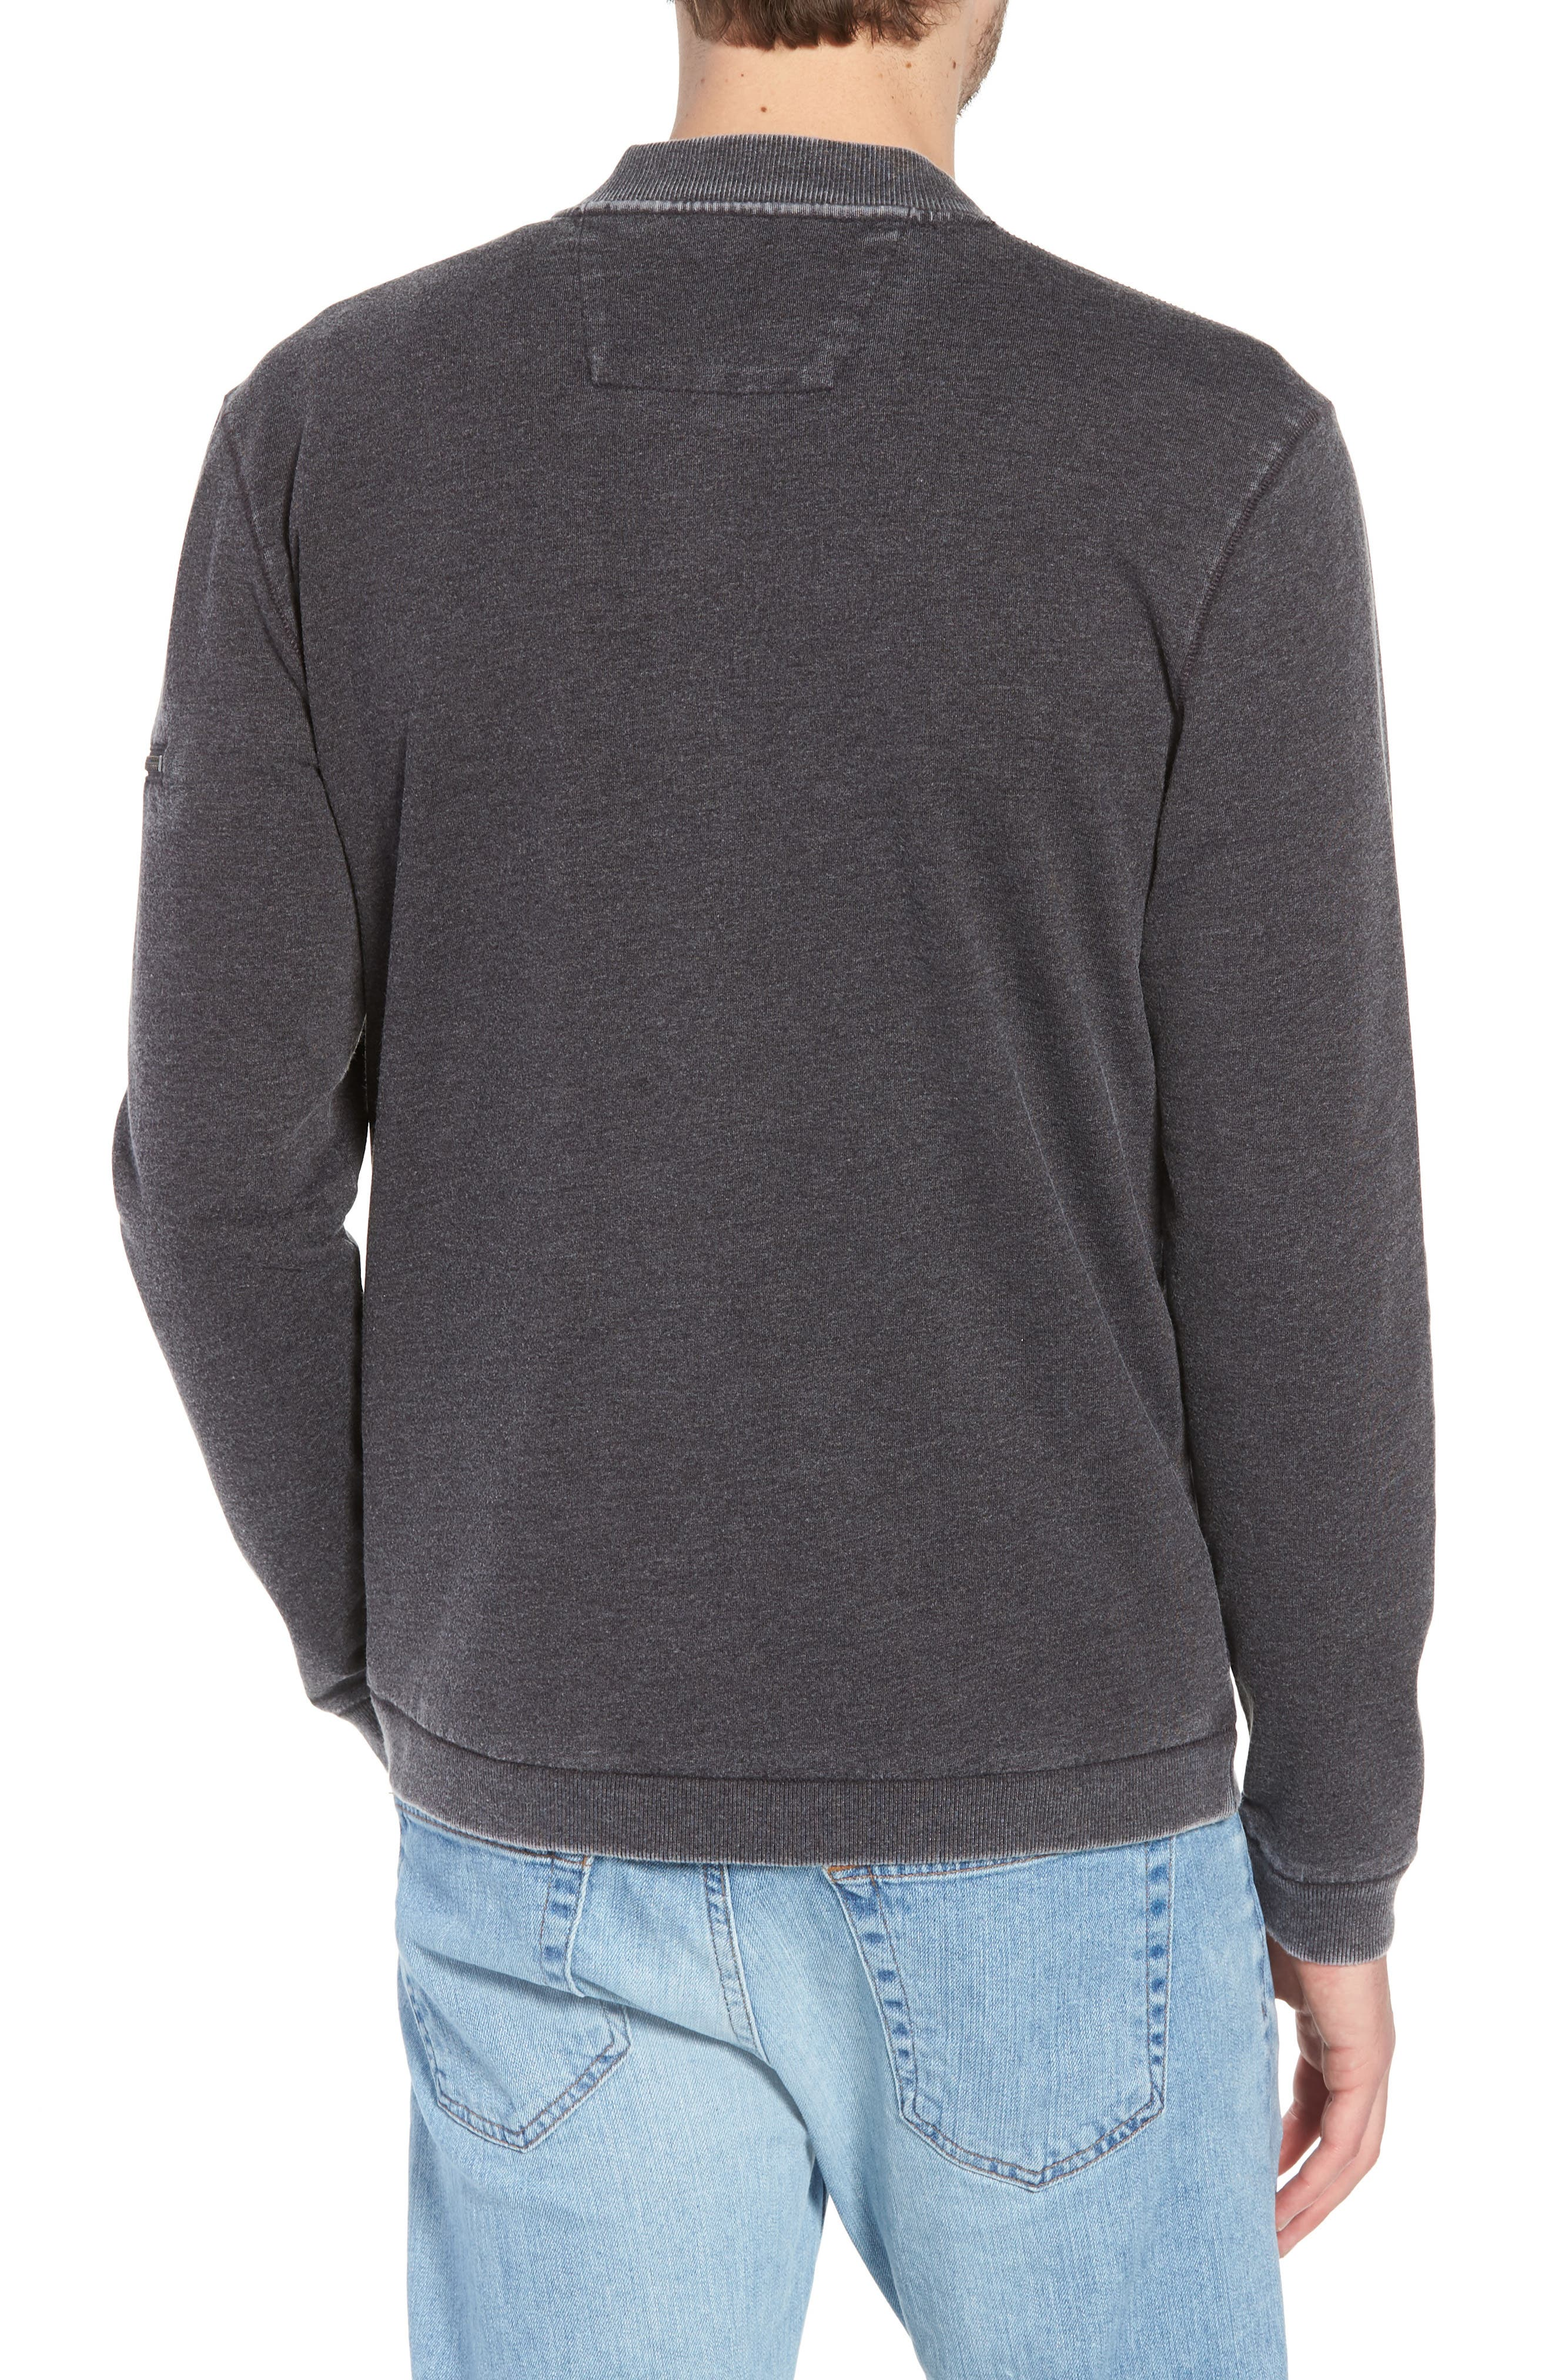 Burnout French Terry Zip Sweater,                             Alternate thumbnail 2, color,                             Metal Grey